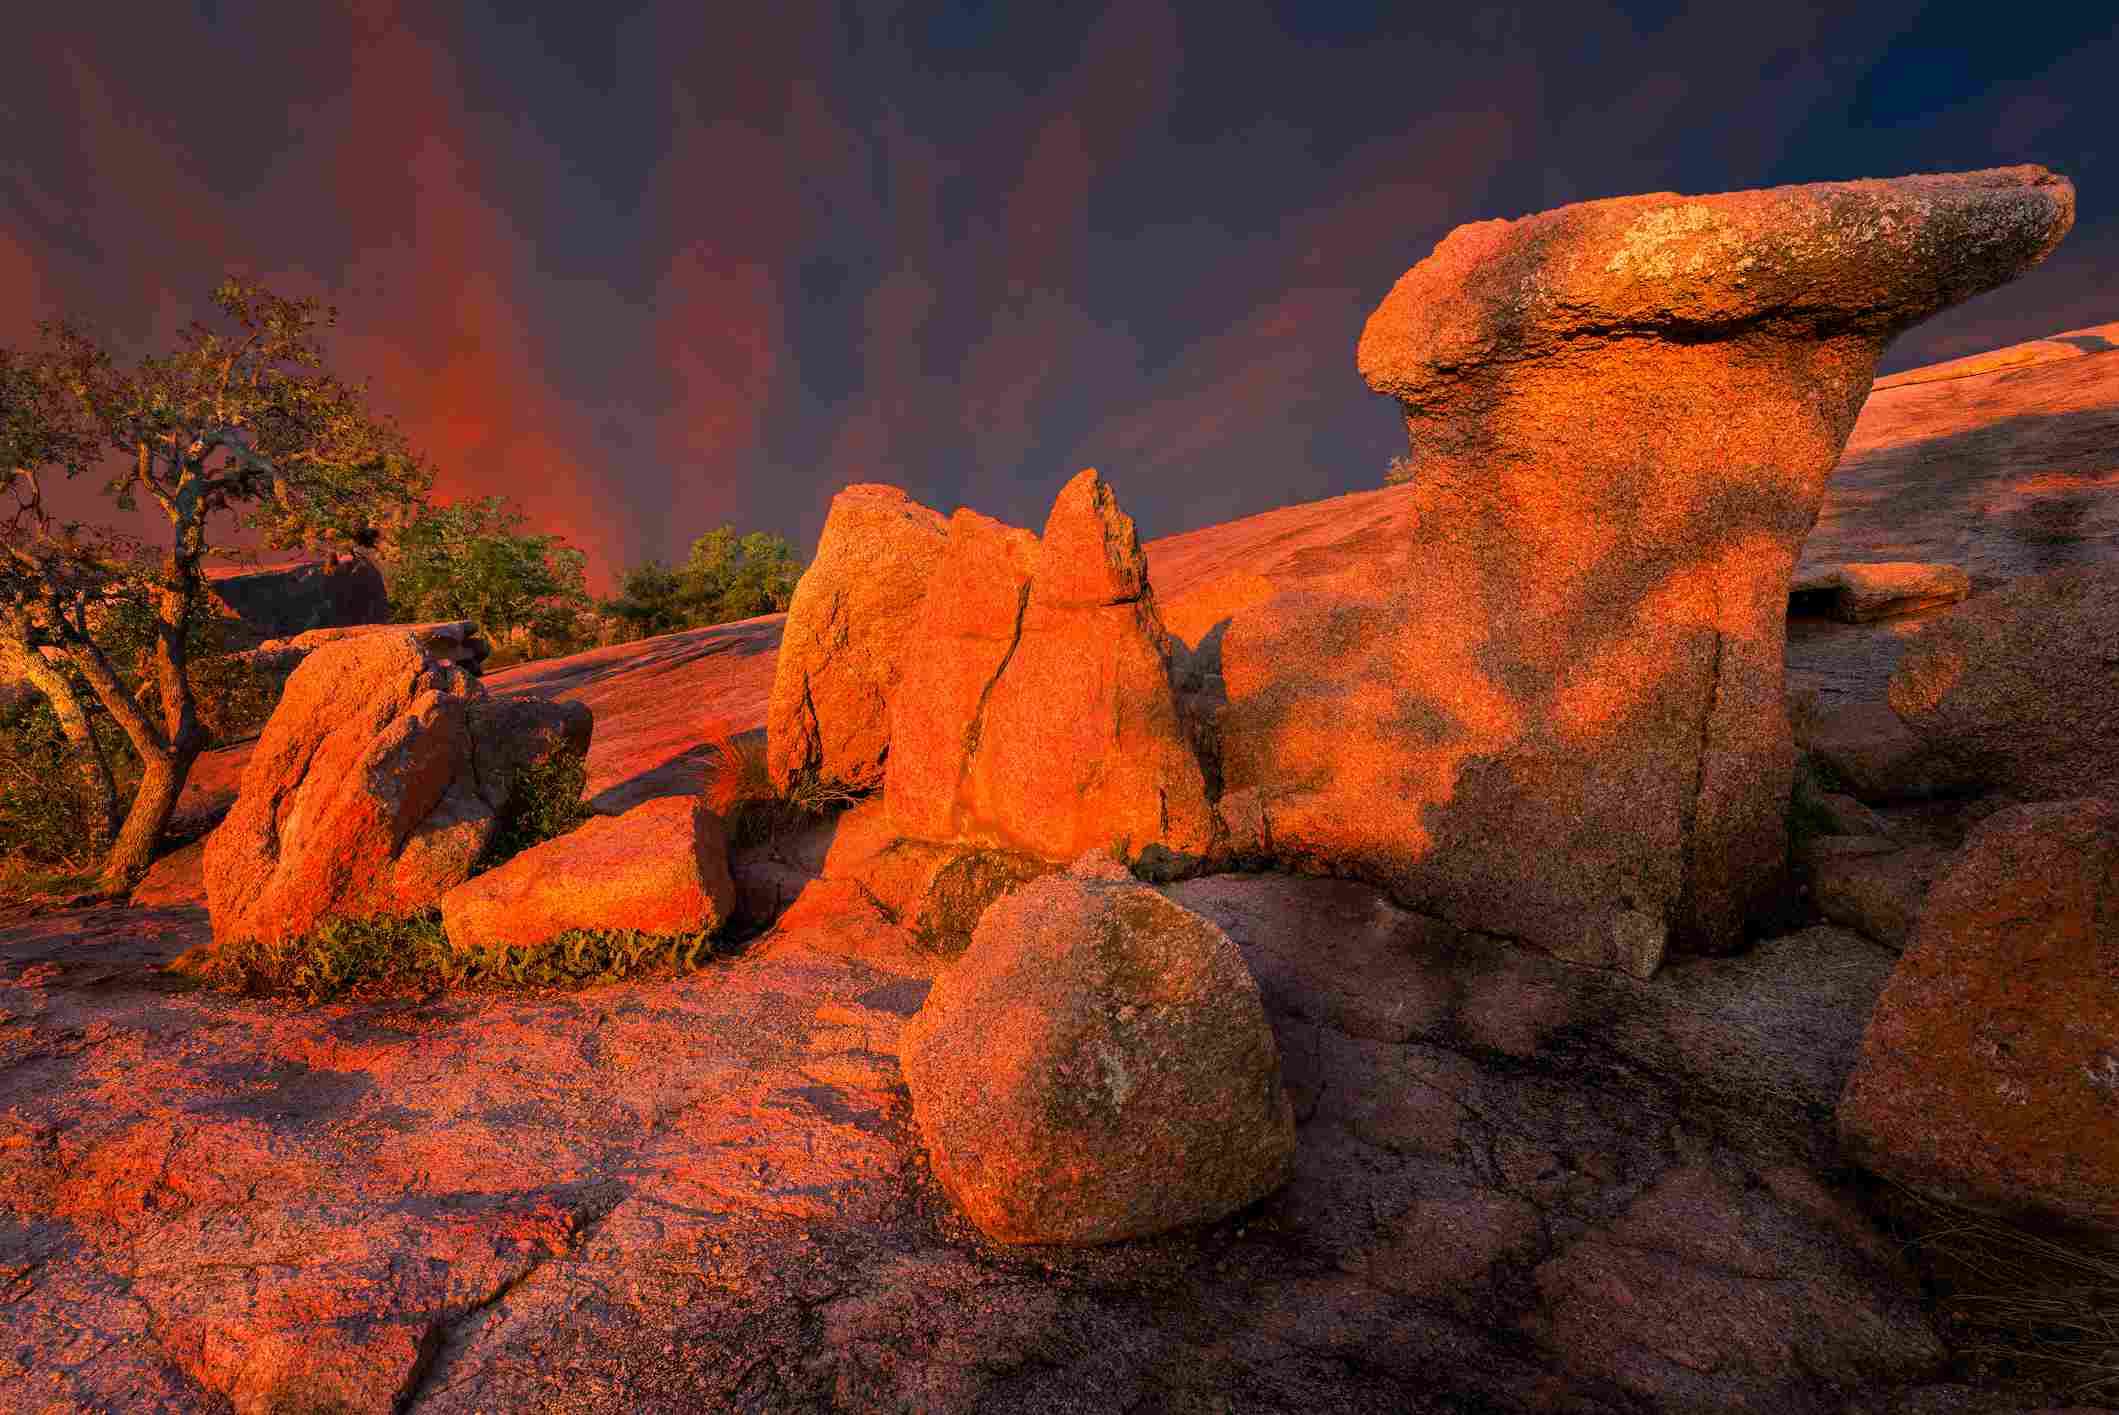 Early Morning at Enchanted Rock State Park, Texas